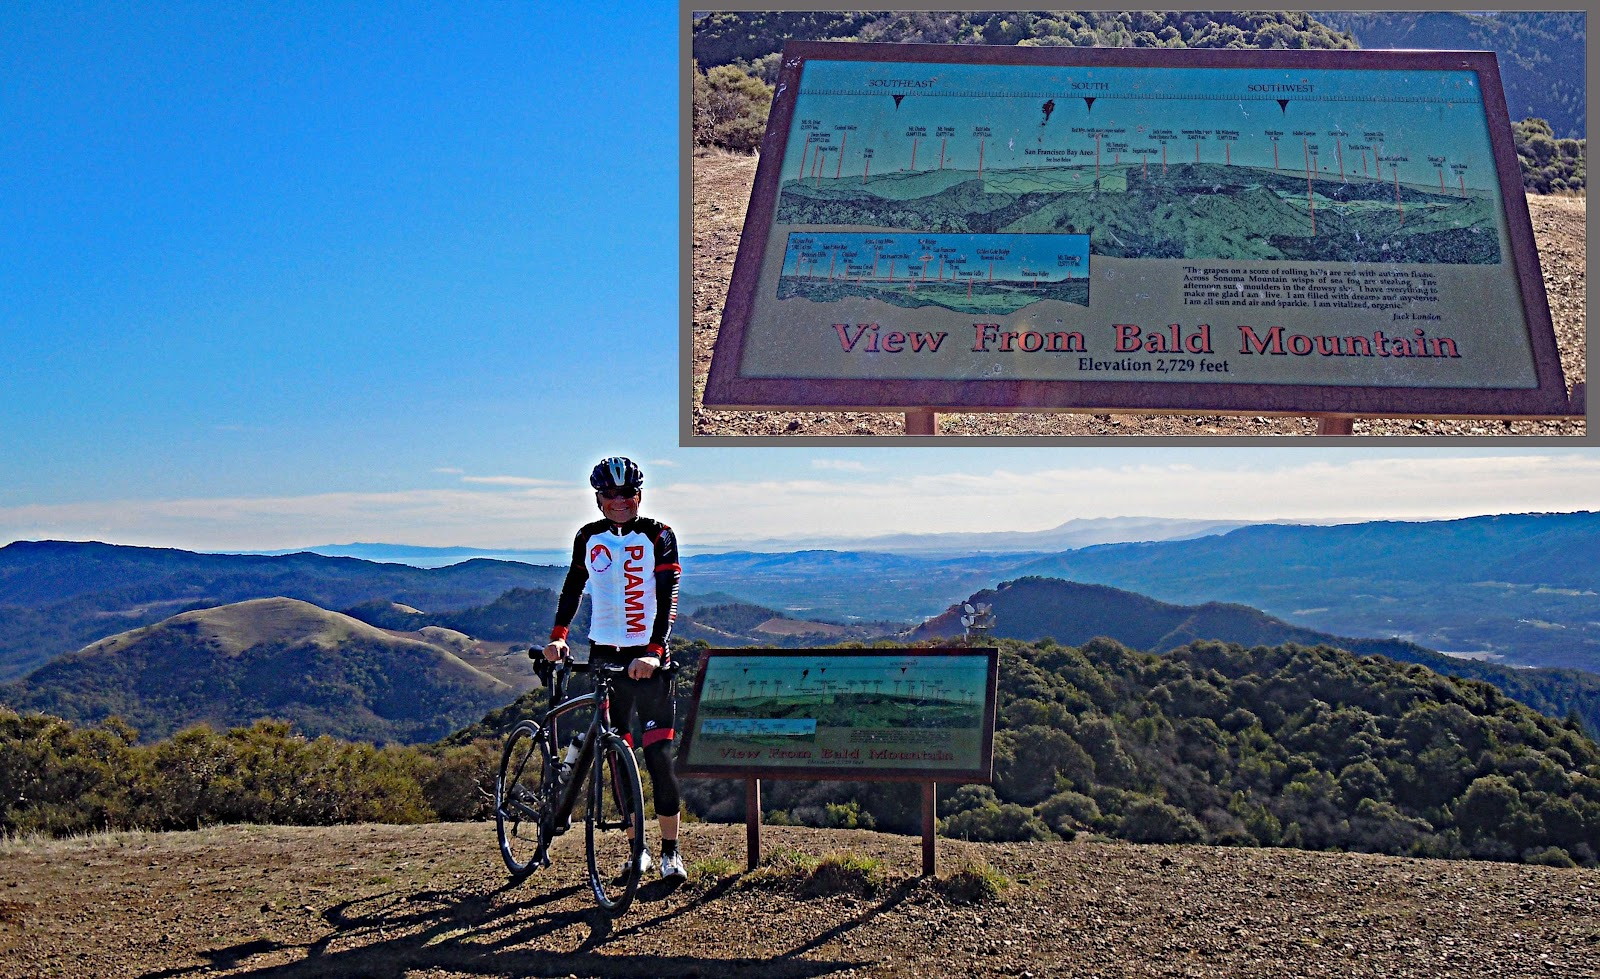 Bike climb up bald mountain - map at the top with mountains